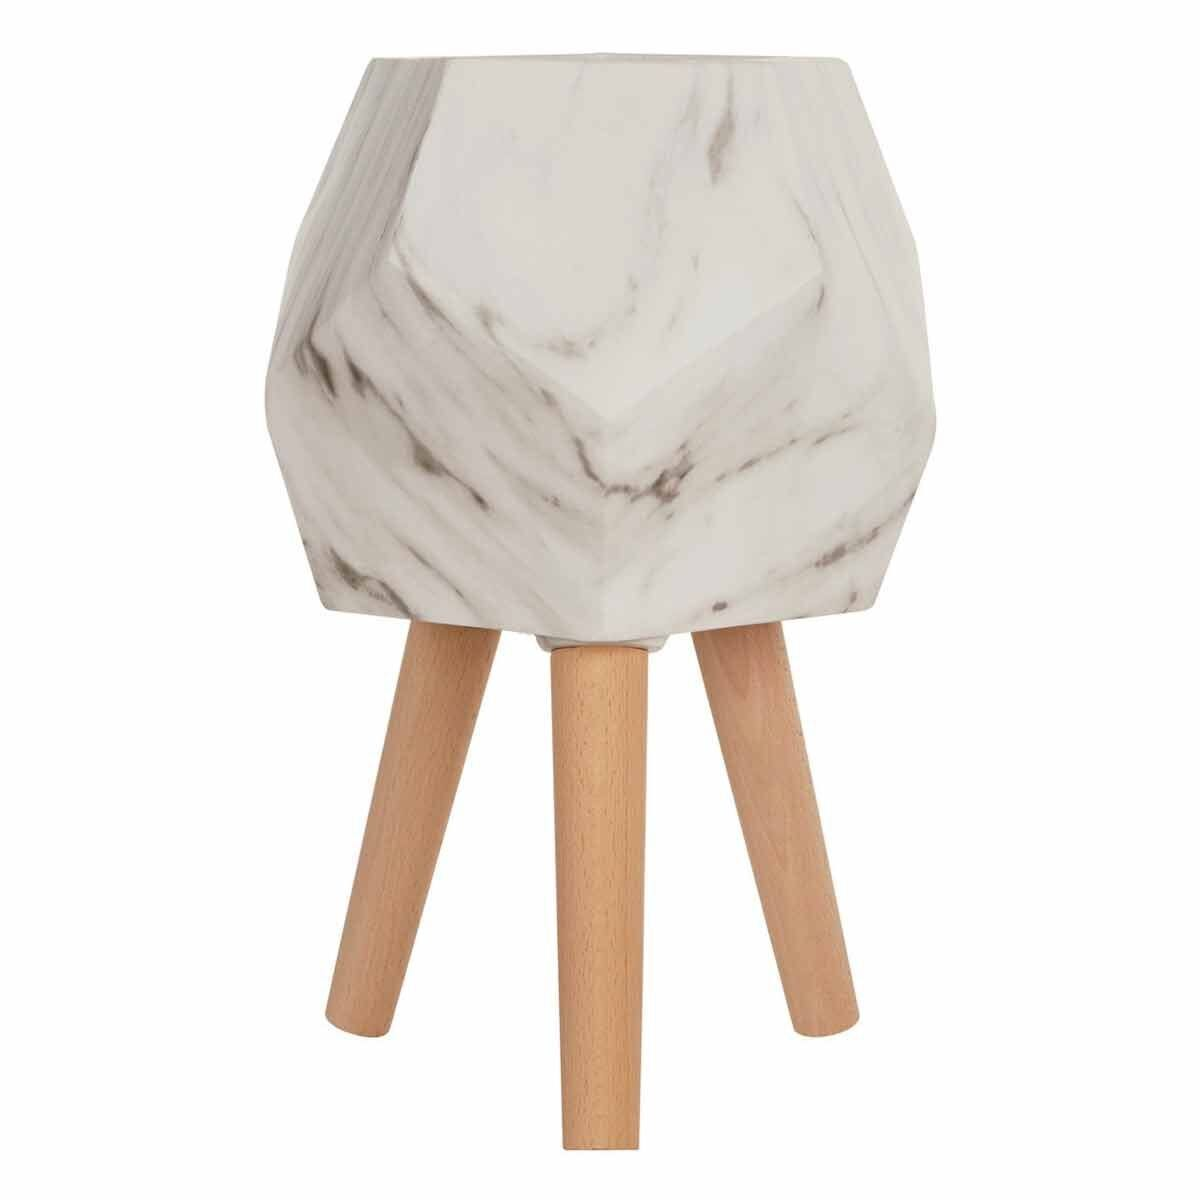 Interiors by PH Small Faux Marble Planter